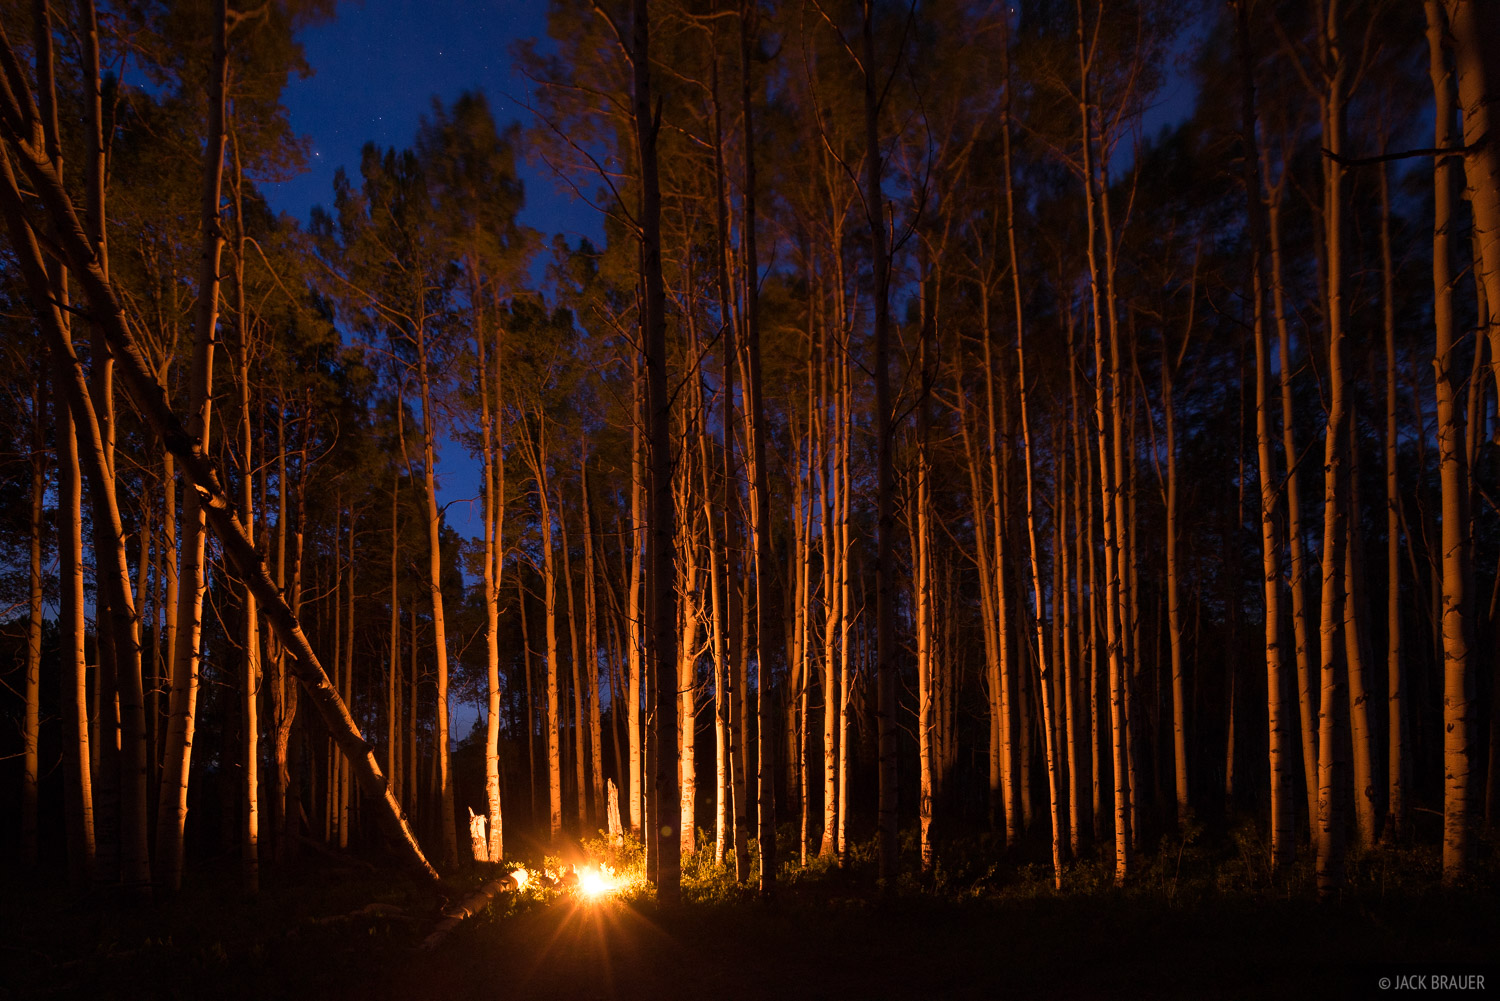 Campfire in the aspens up by Kebler Pass, near Crested Butte, Colorado.